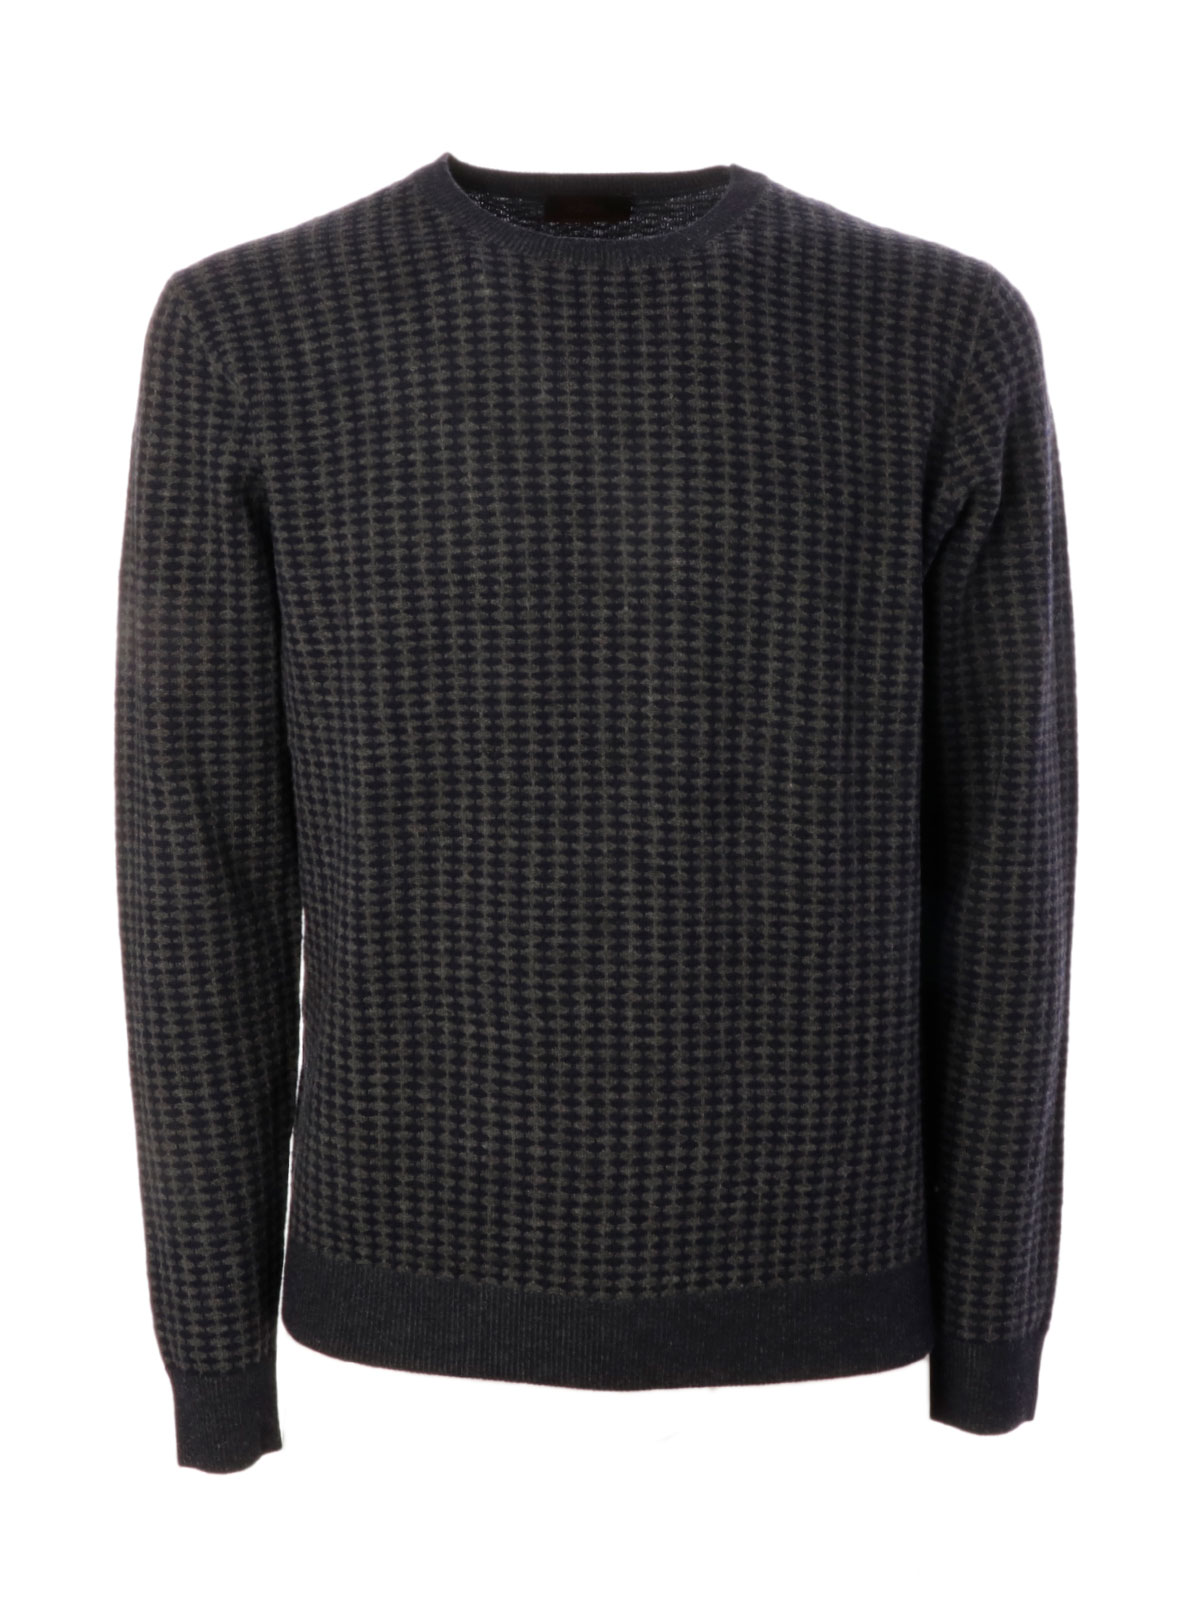 Picture of ALTEA | Men's Patterned Sweater